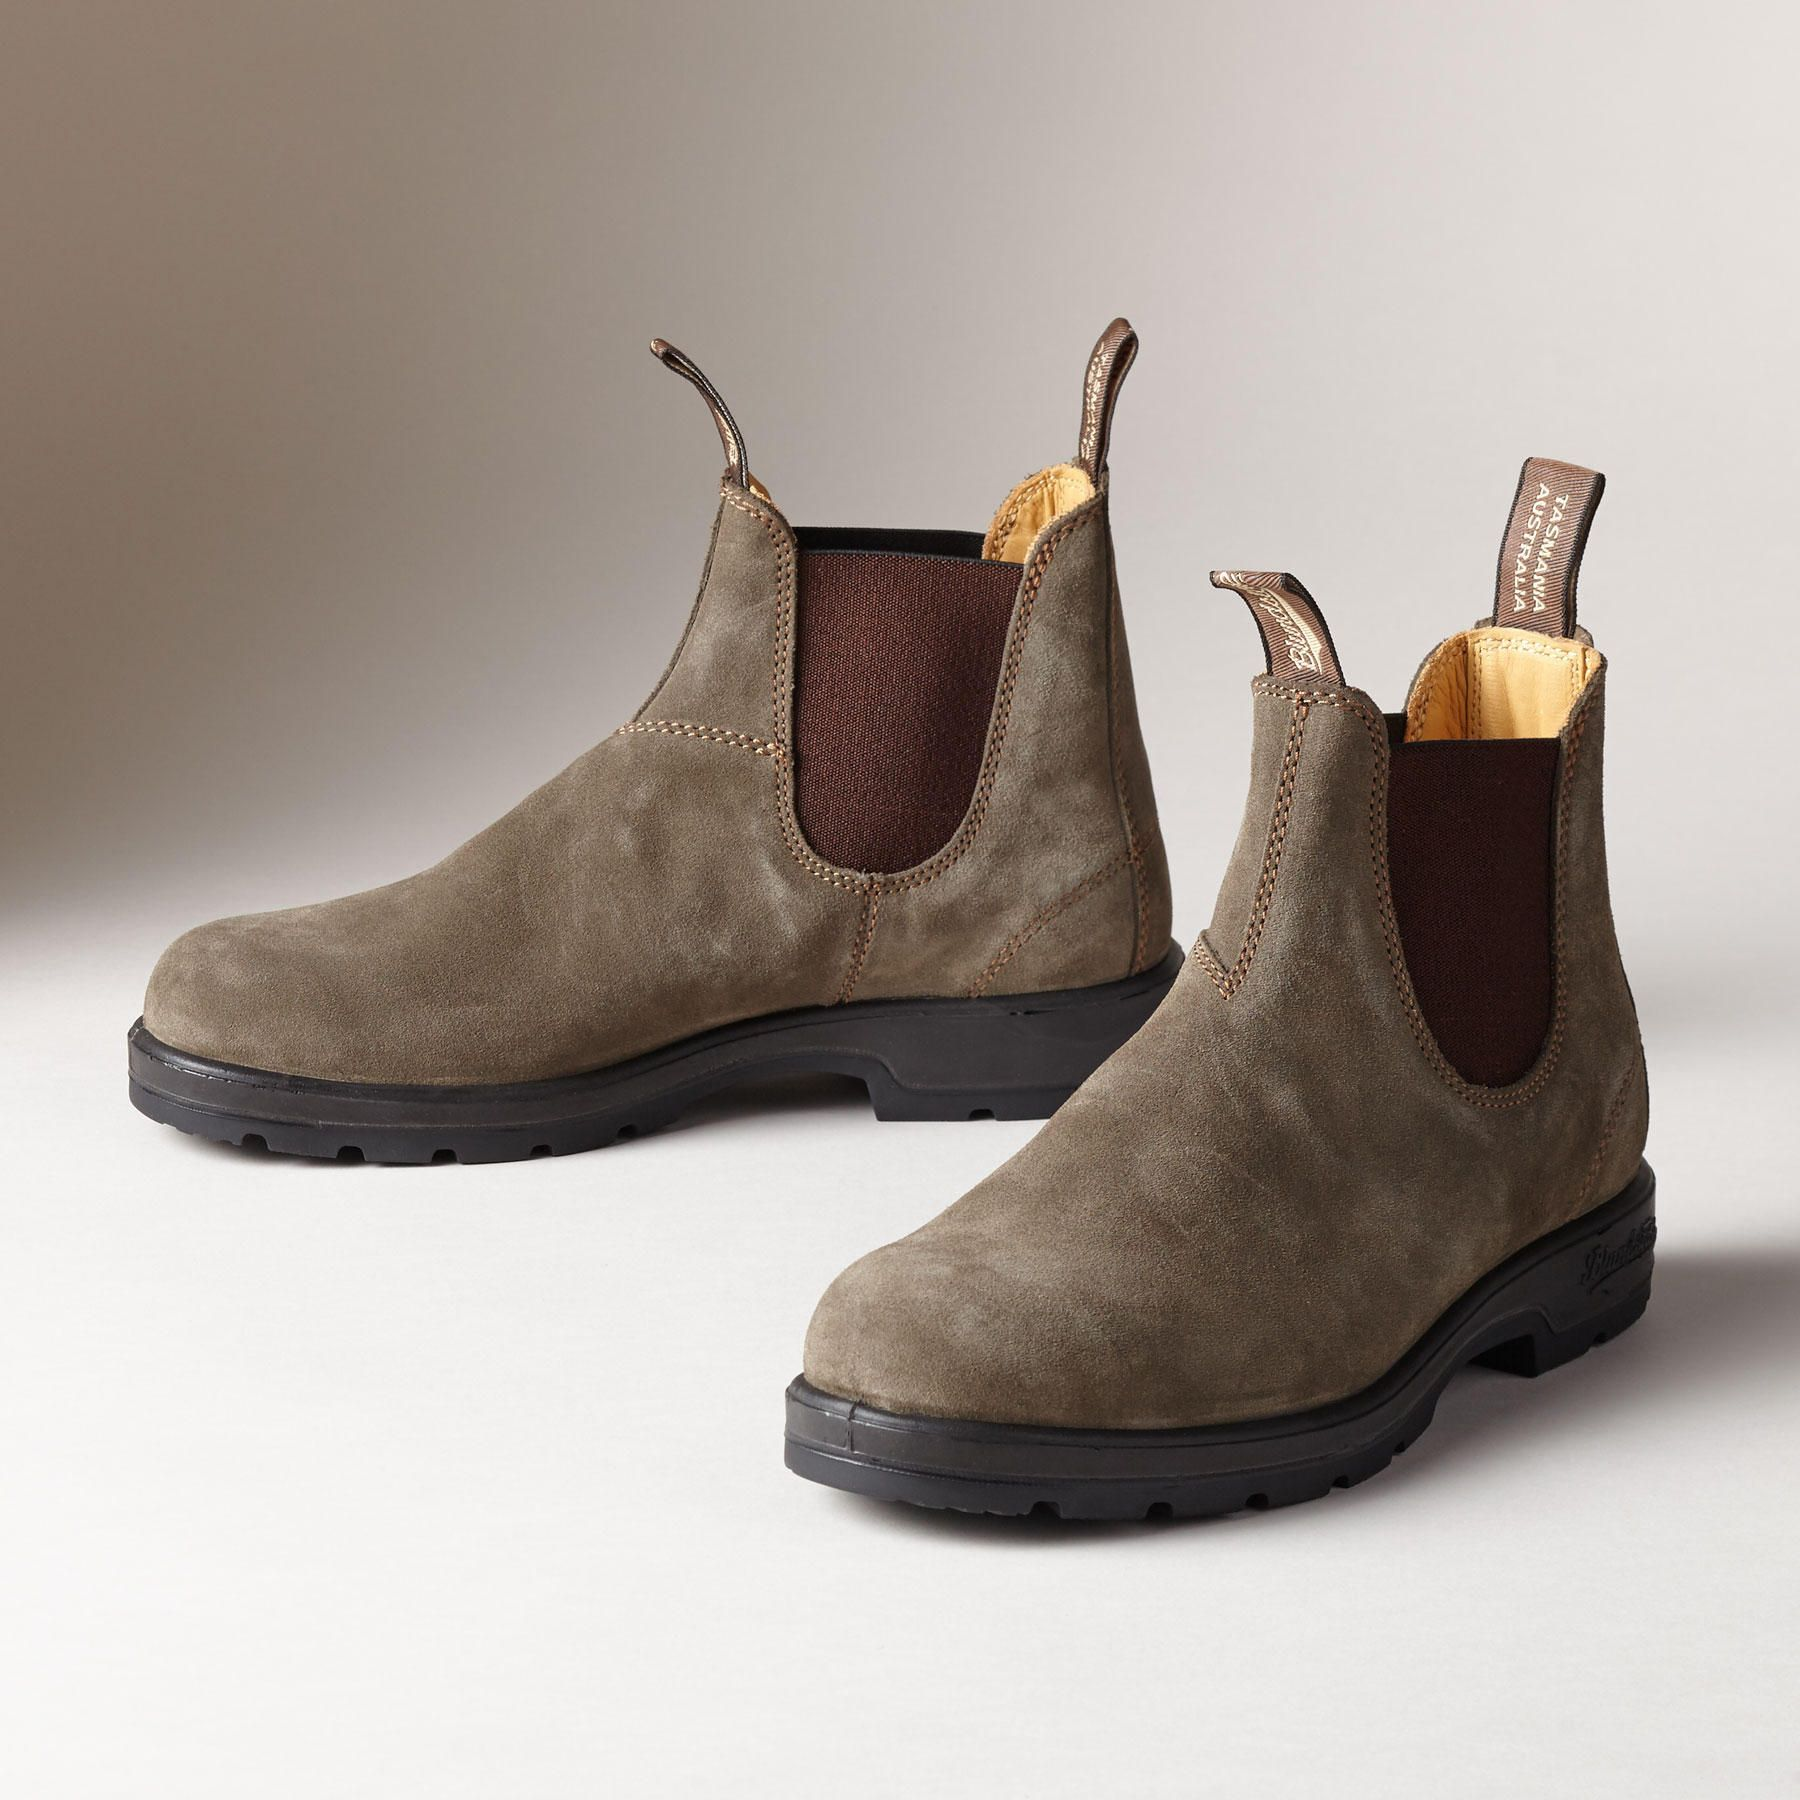 SUPER 550 BLUNDSTONE BOOT -- Down Under, these waterproof pull-on boots from